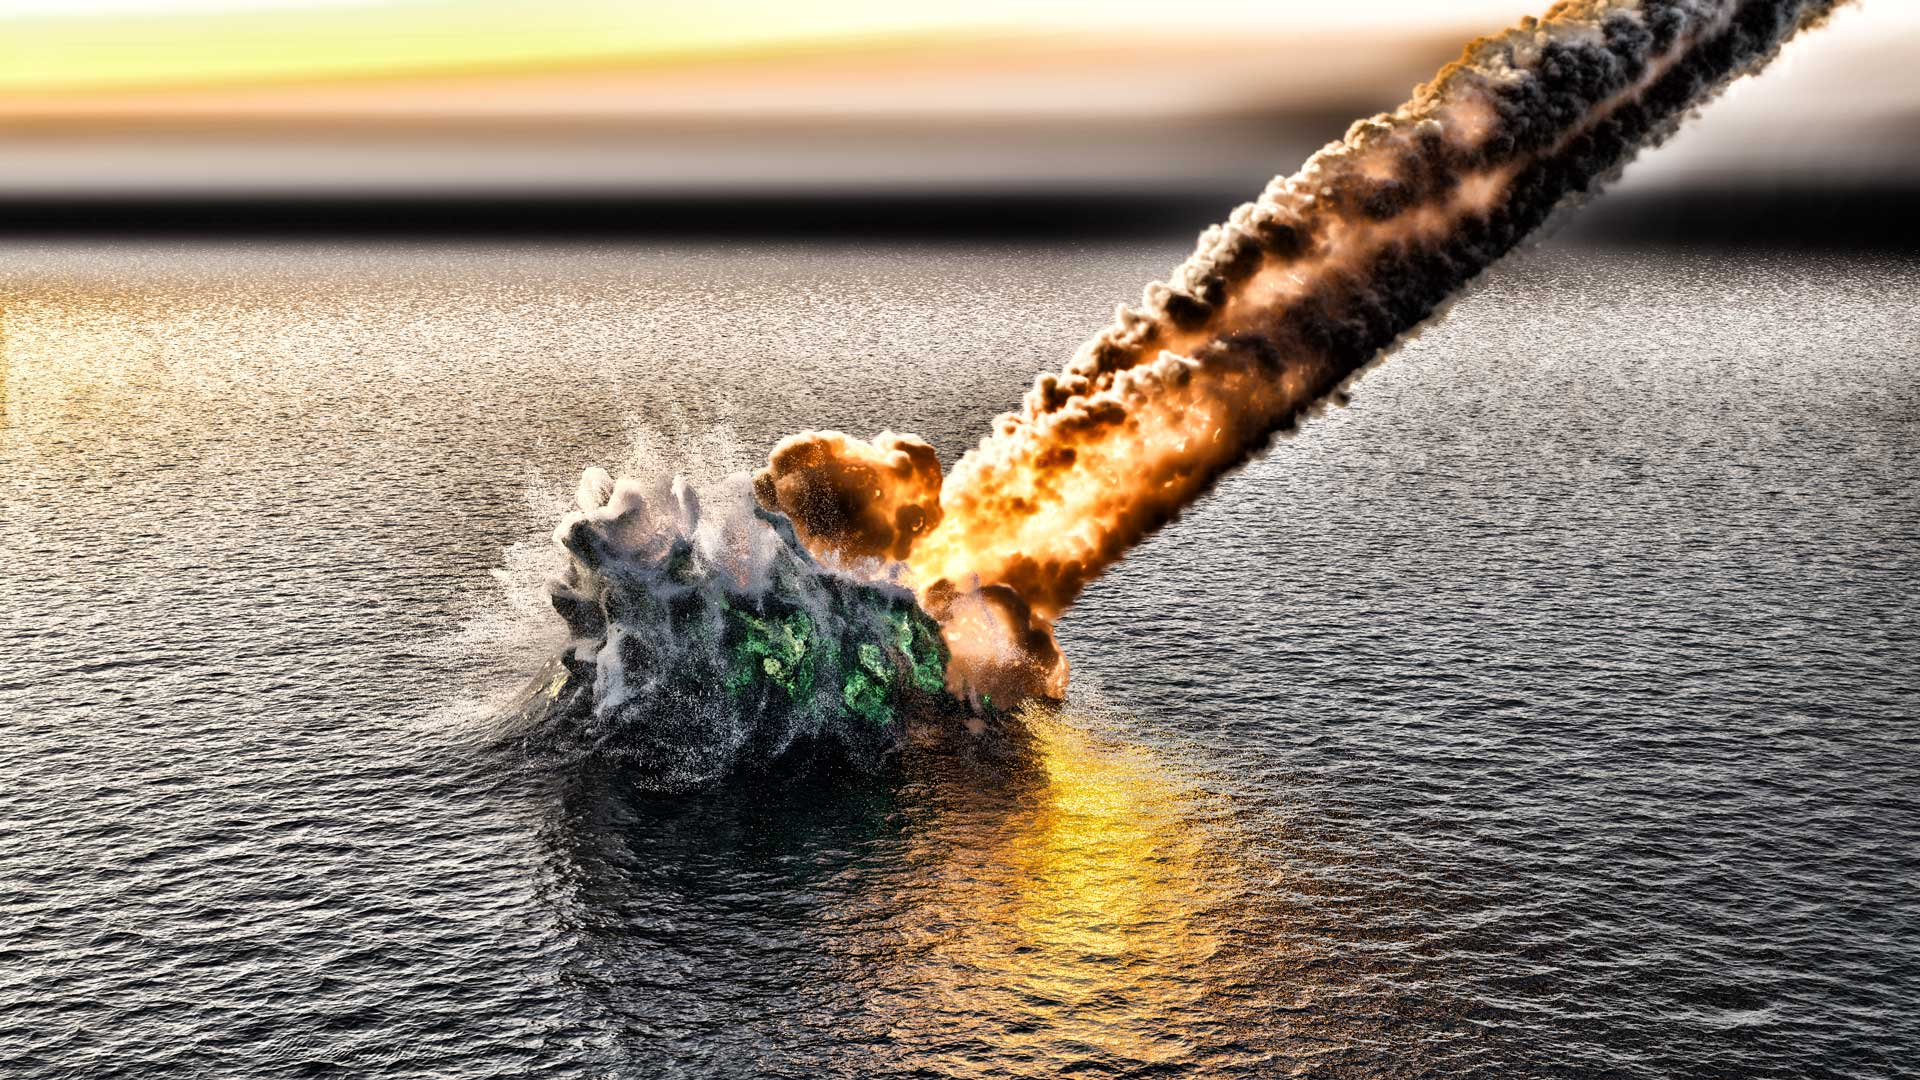 Apocalypse - the Last Judgment: UFO lander crashes into the sea.